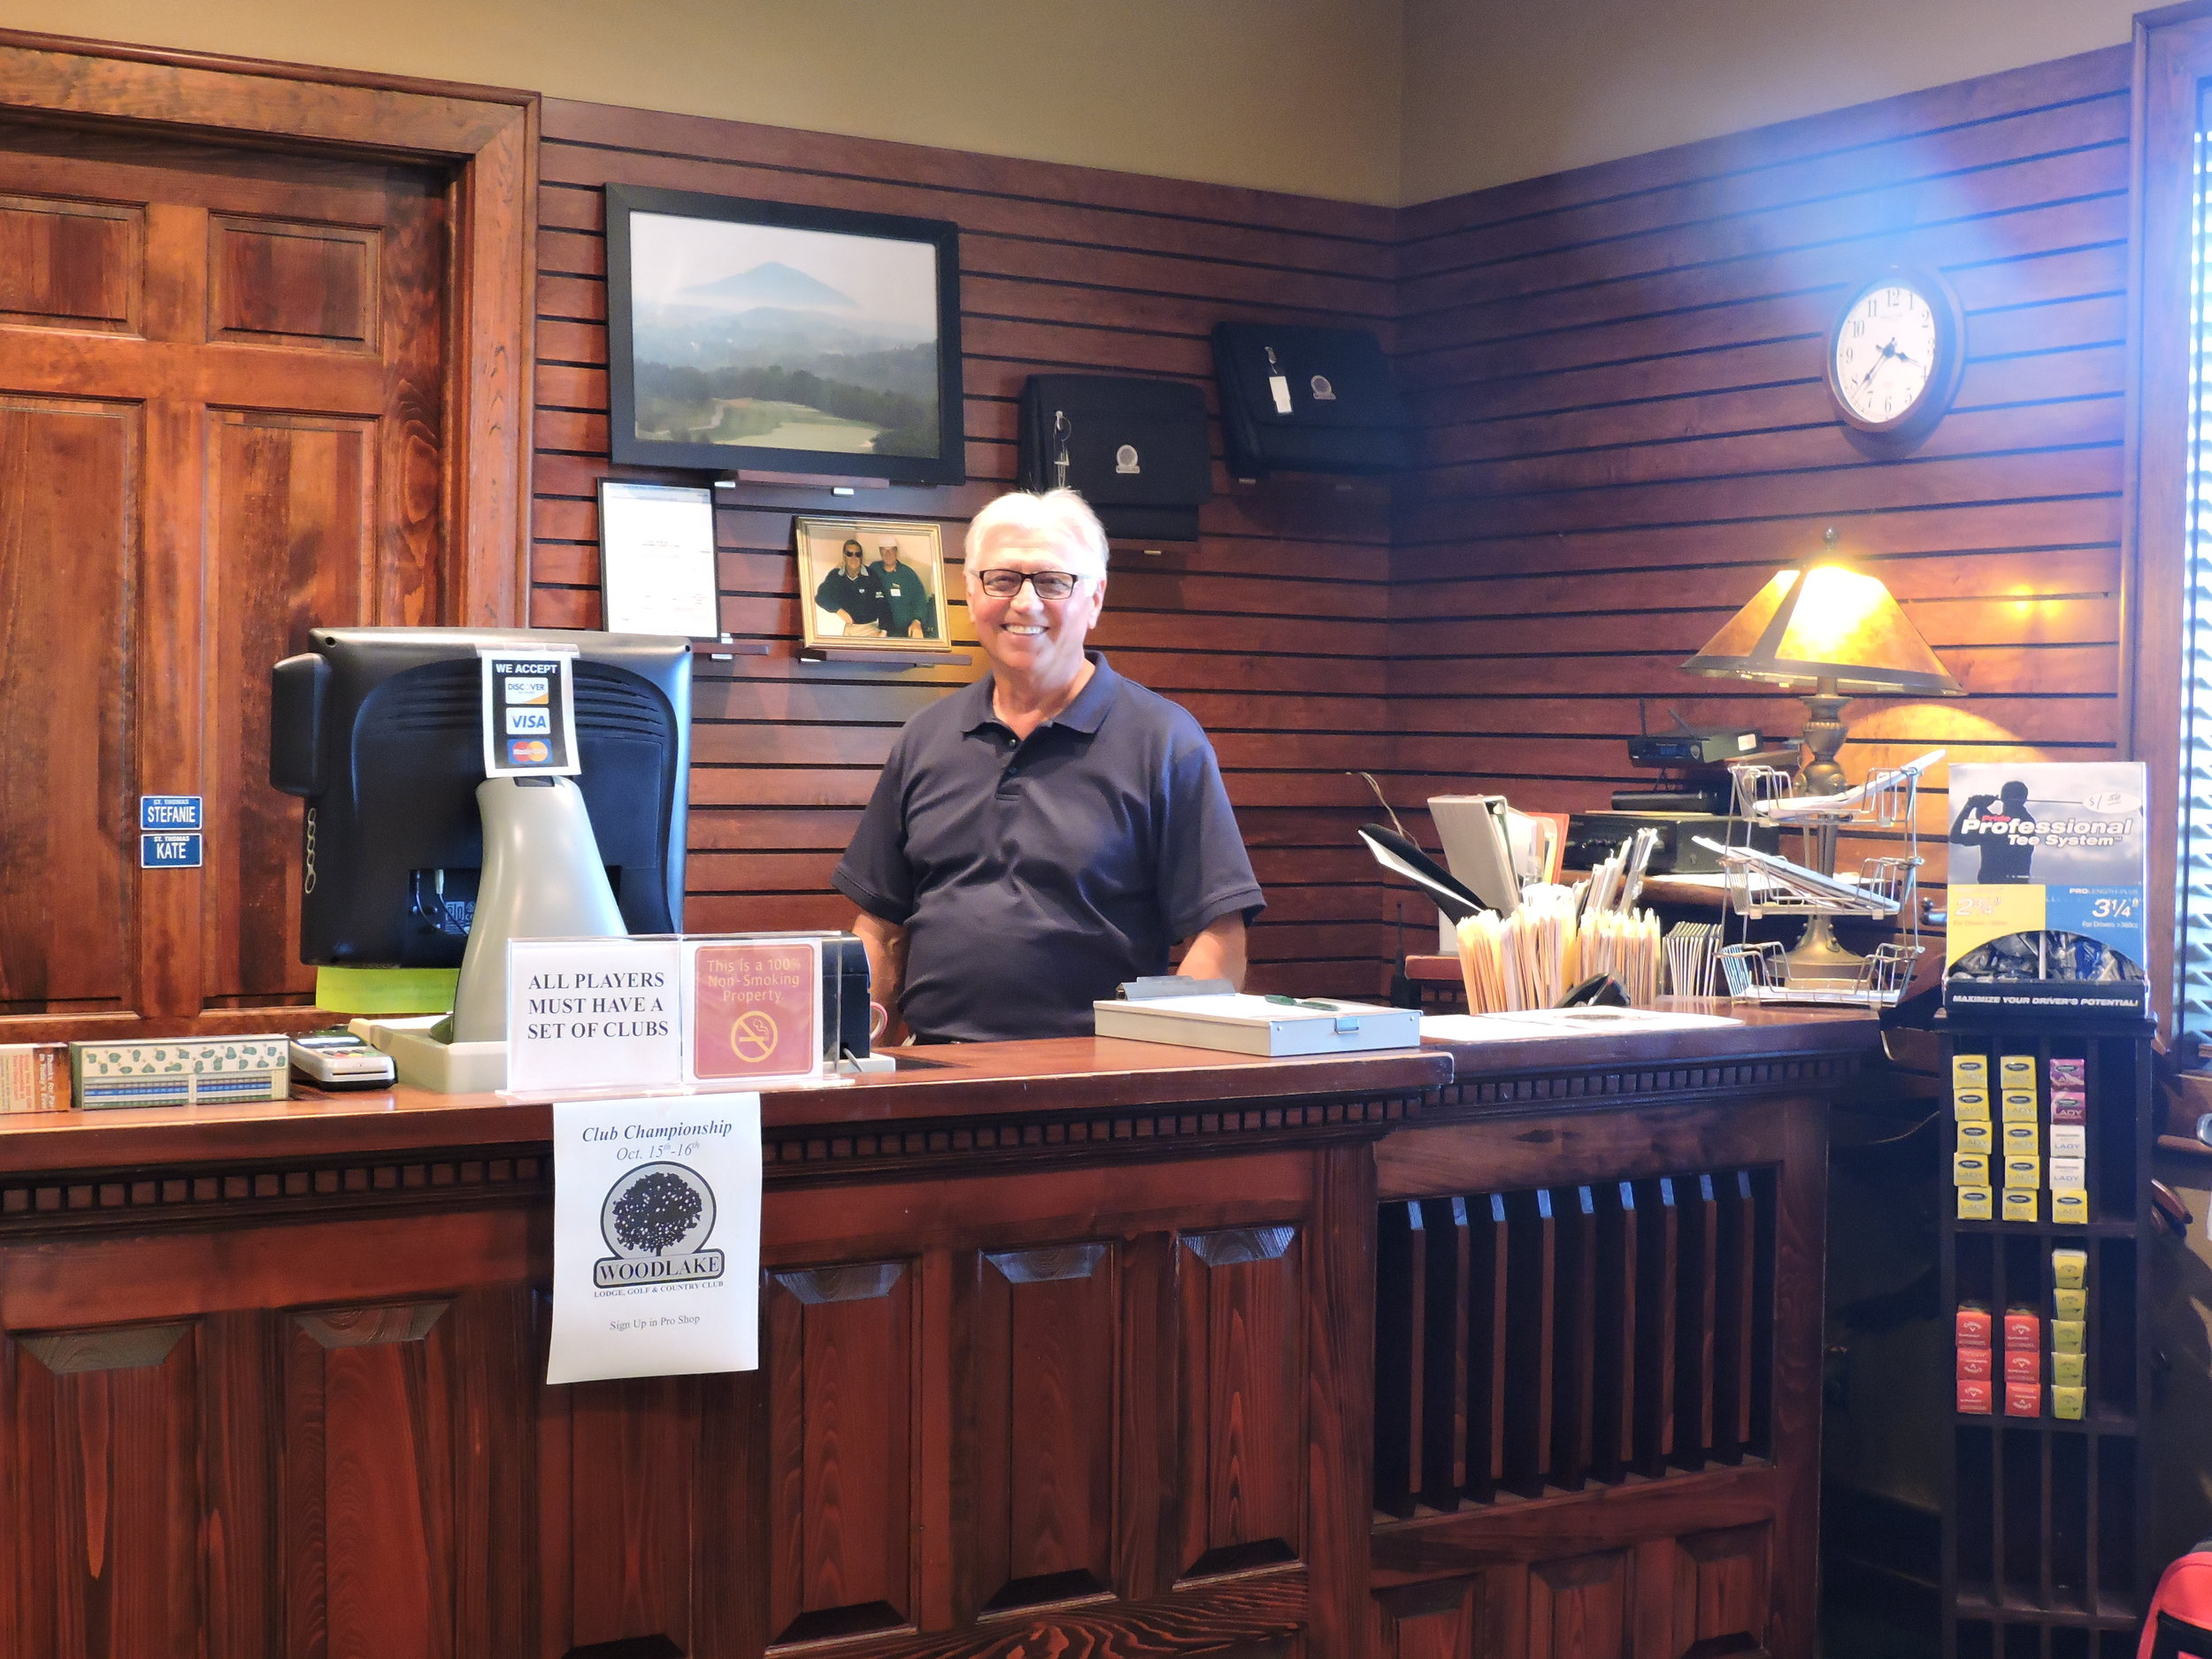 Tennessee_Golf_Woodlake_Pro_Shop_Welcome.JPG